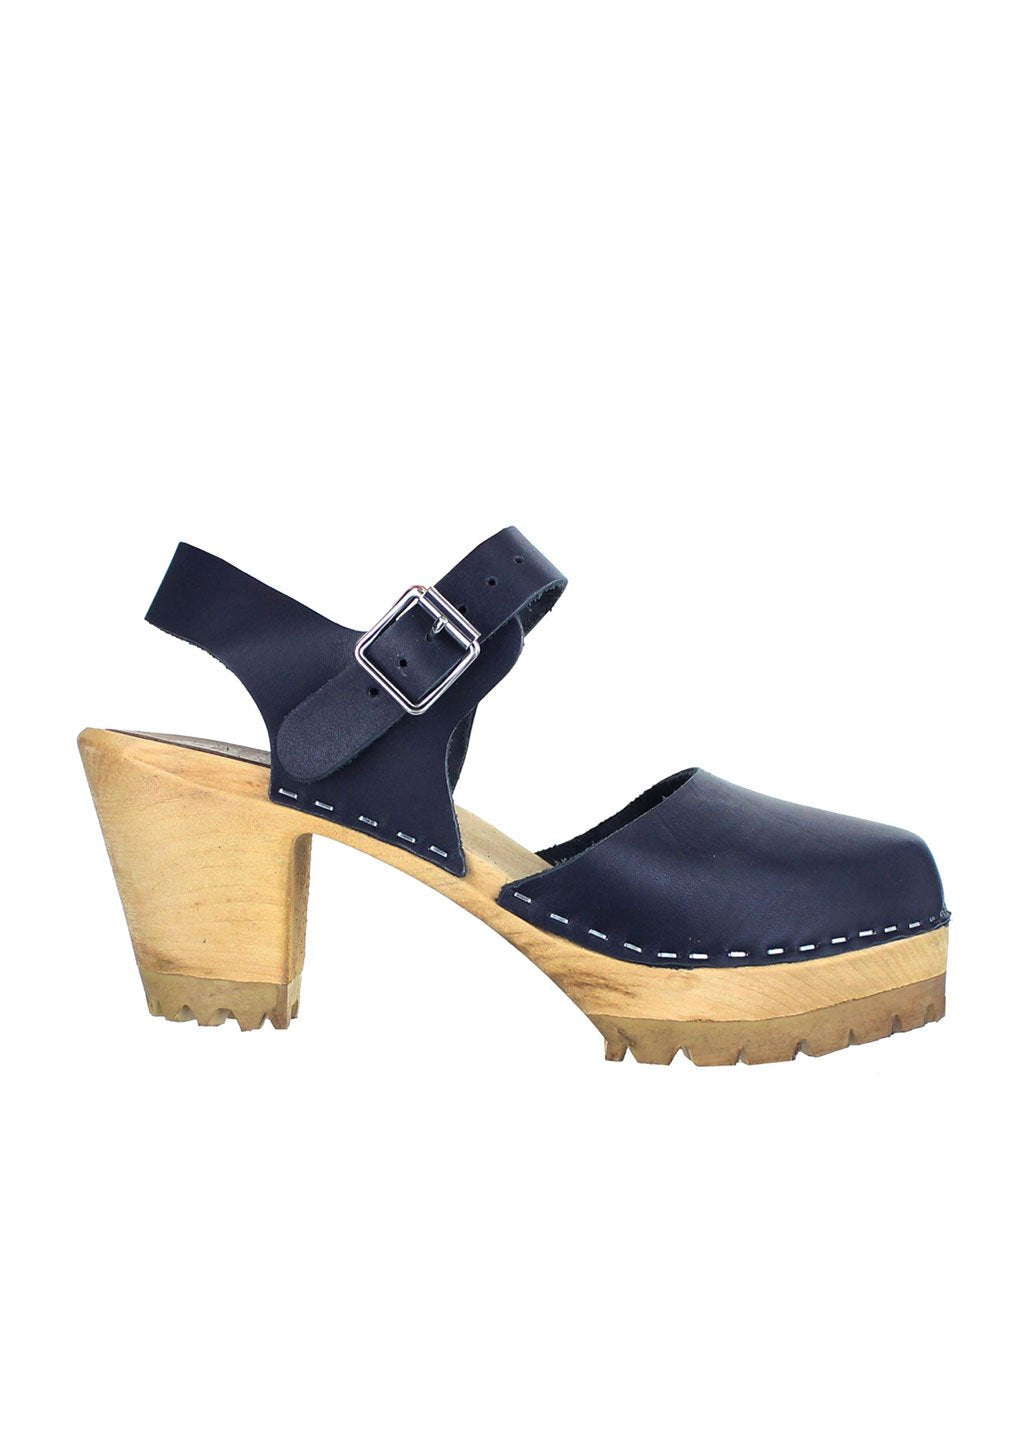 Mia Women's Abba Sandal Navy Leather